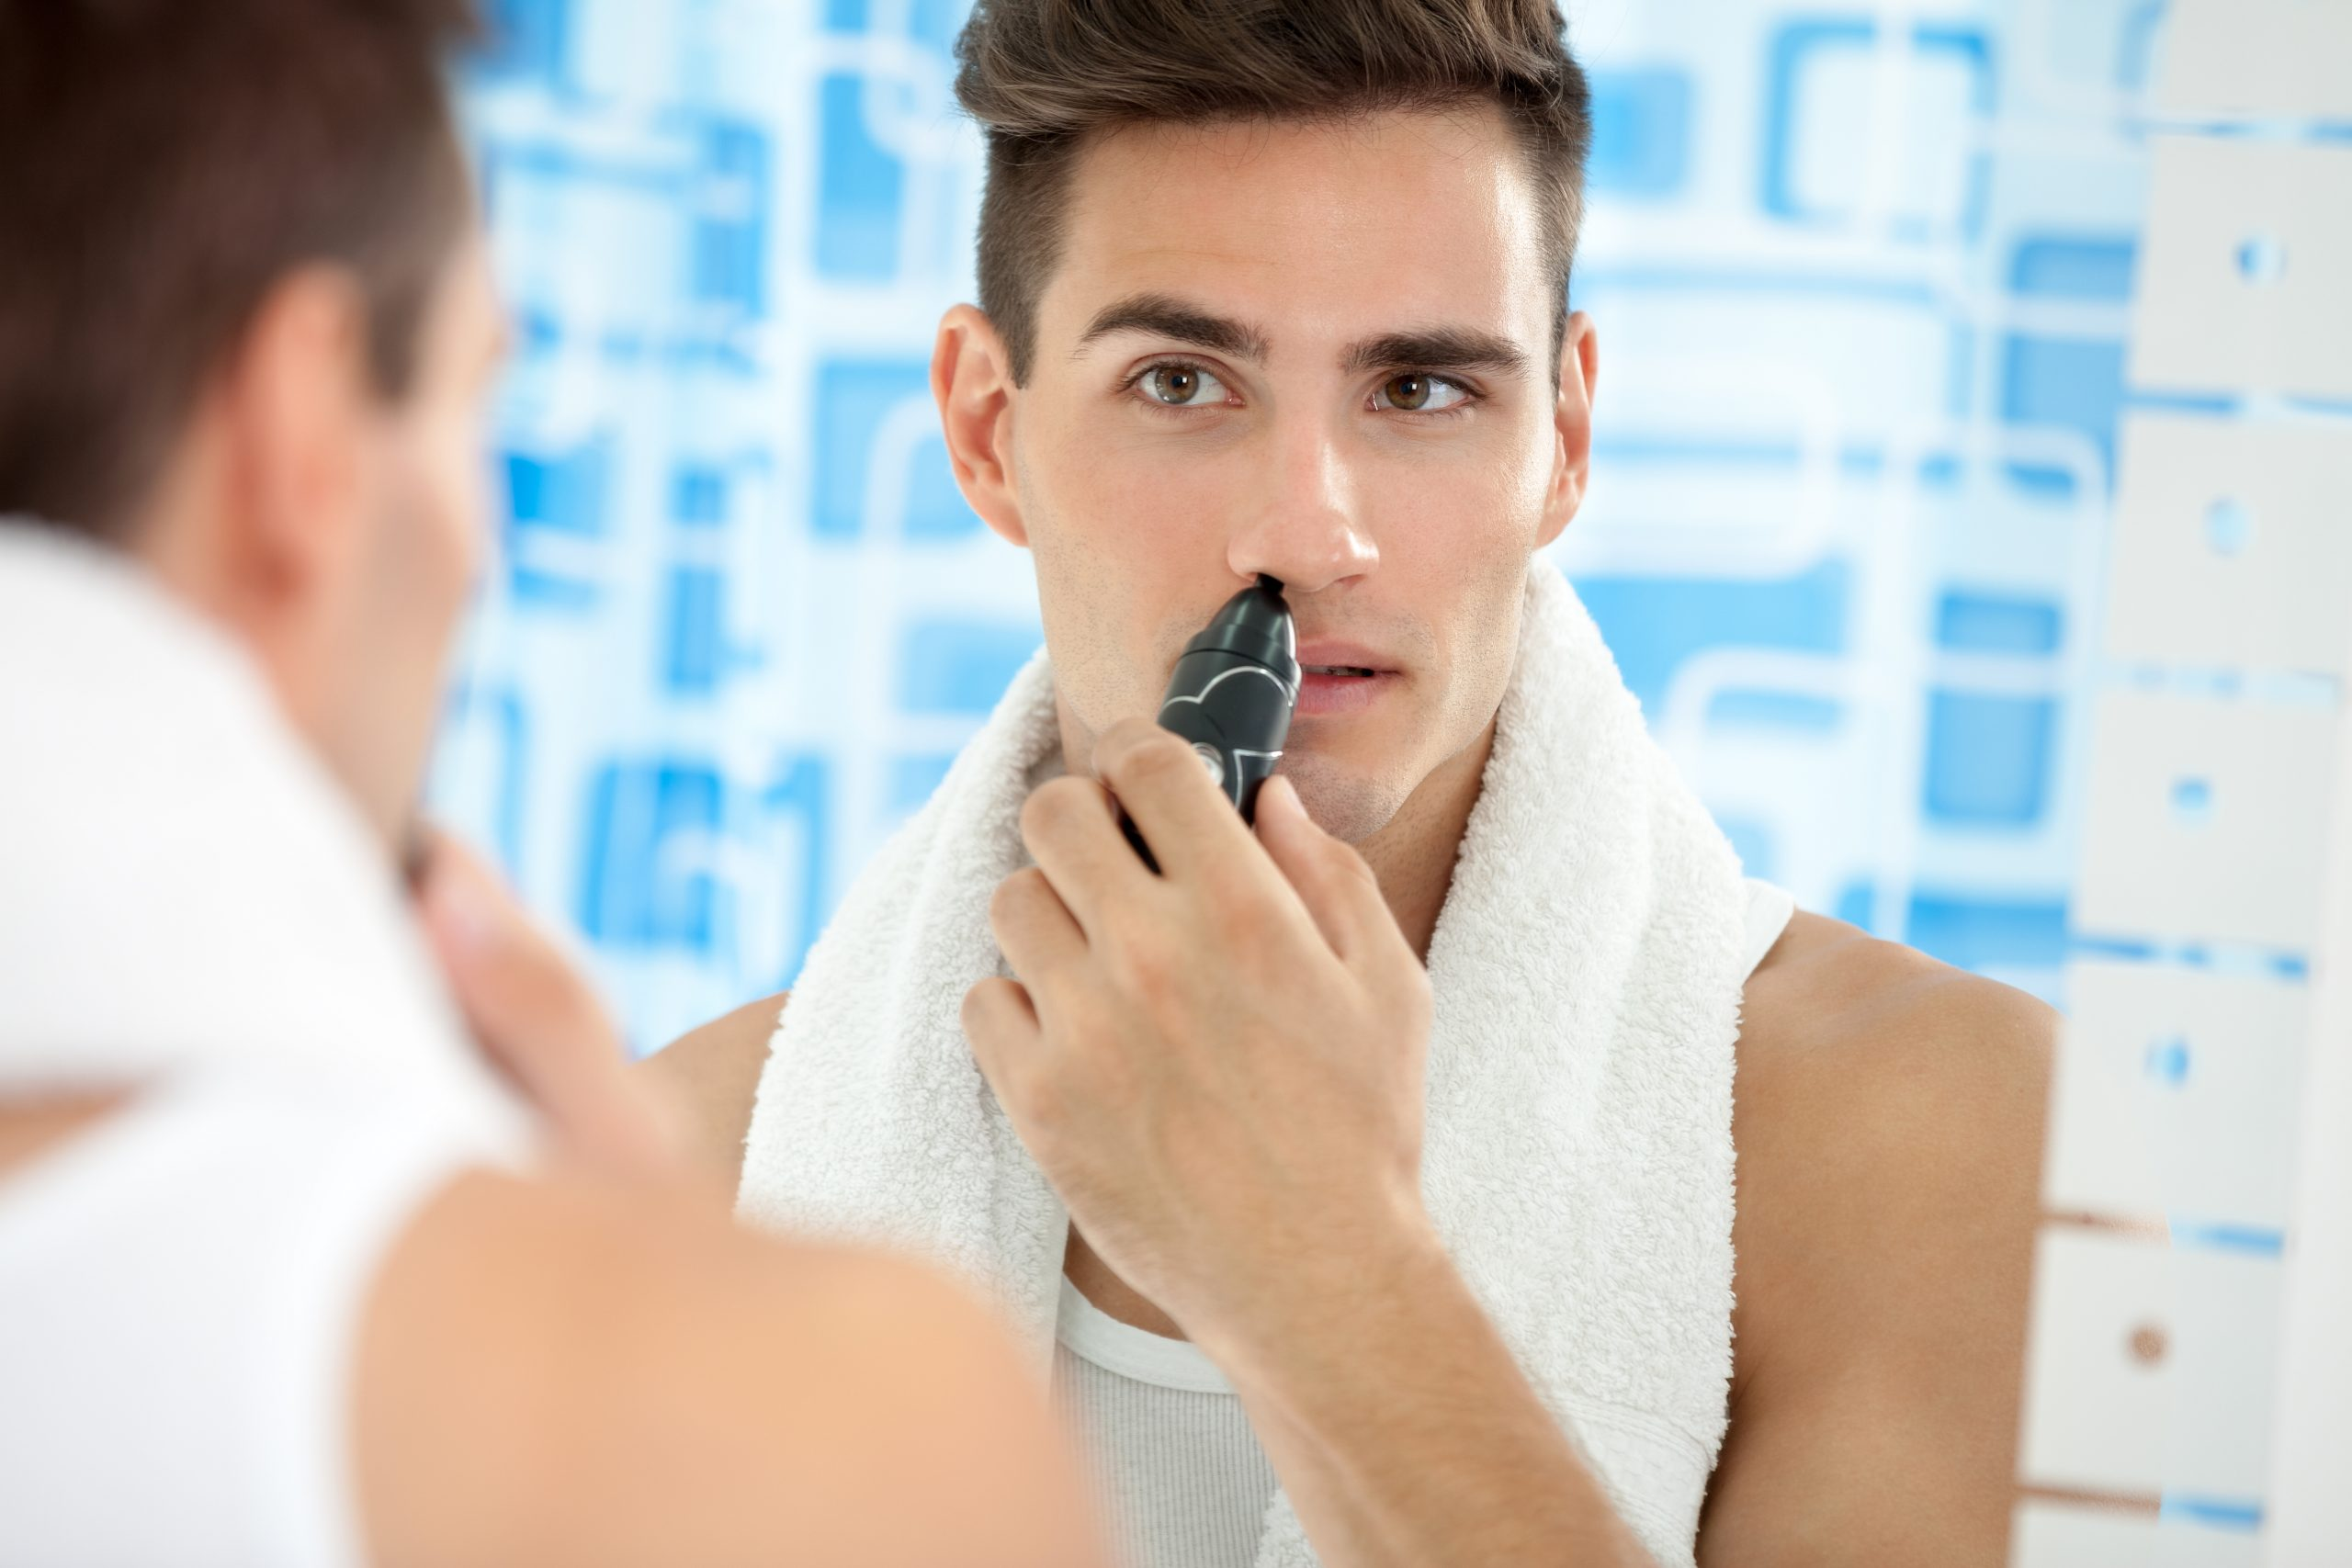 Nose Grooming, Nose Hair Trimming, How to Manscape